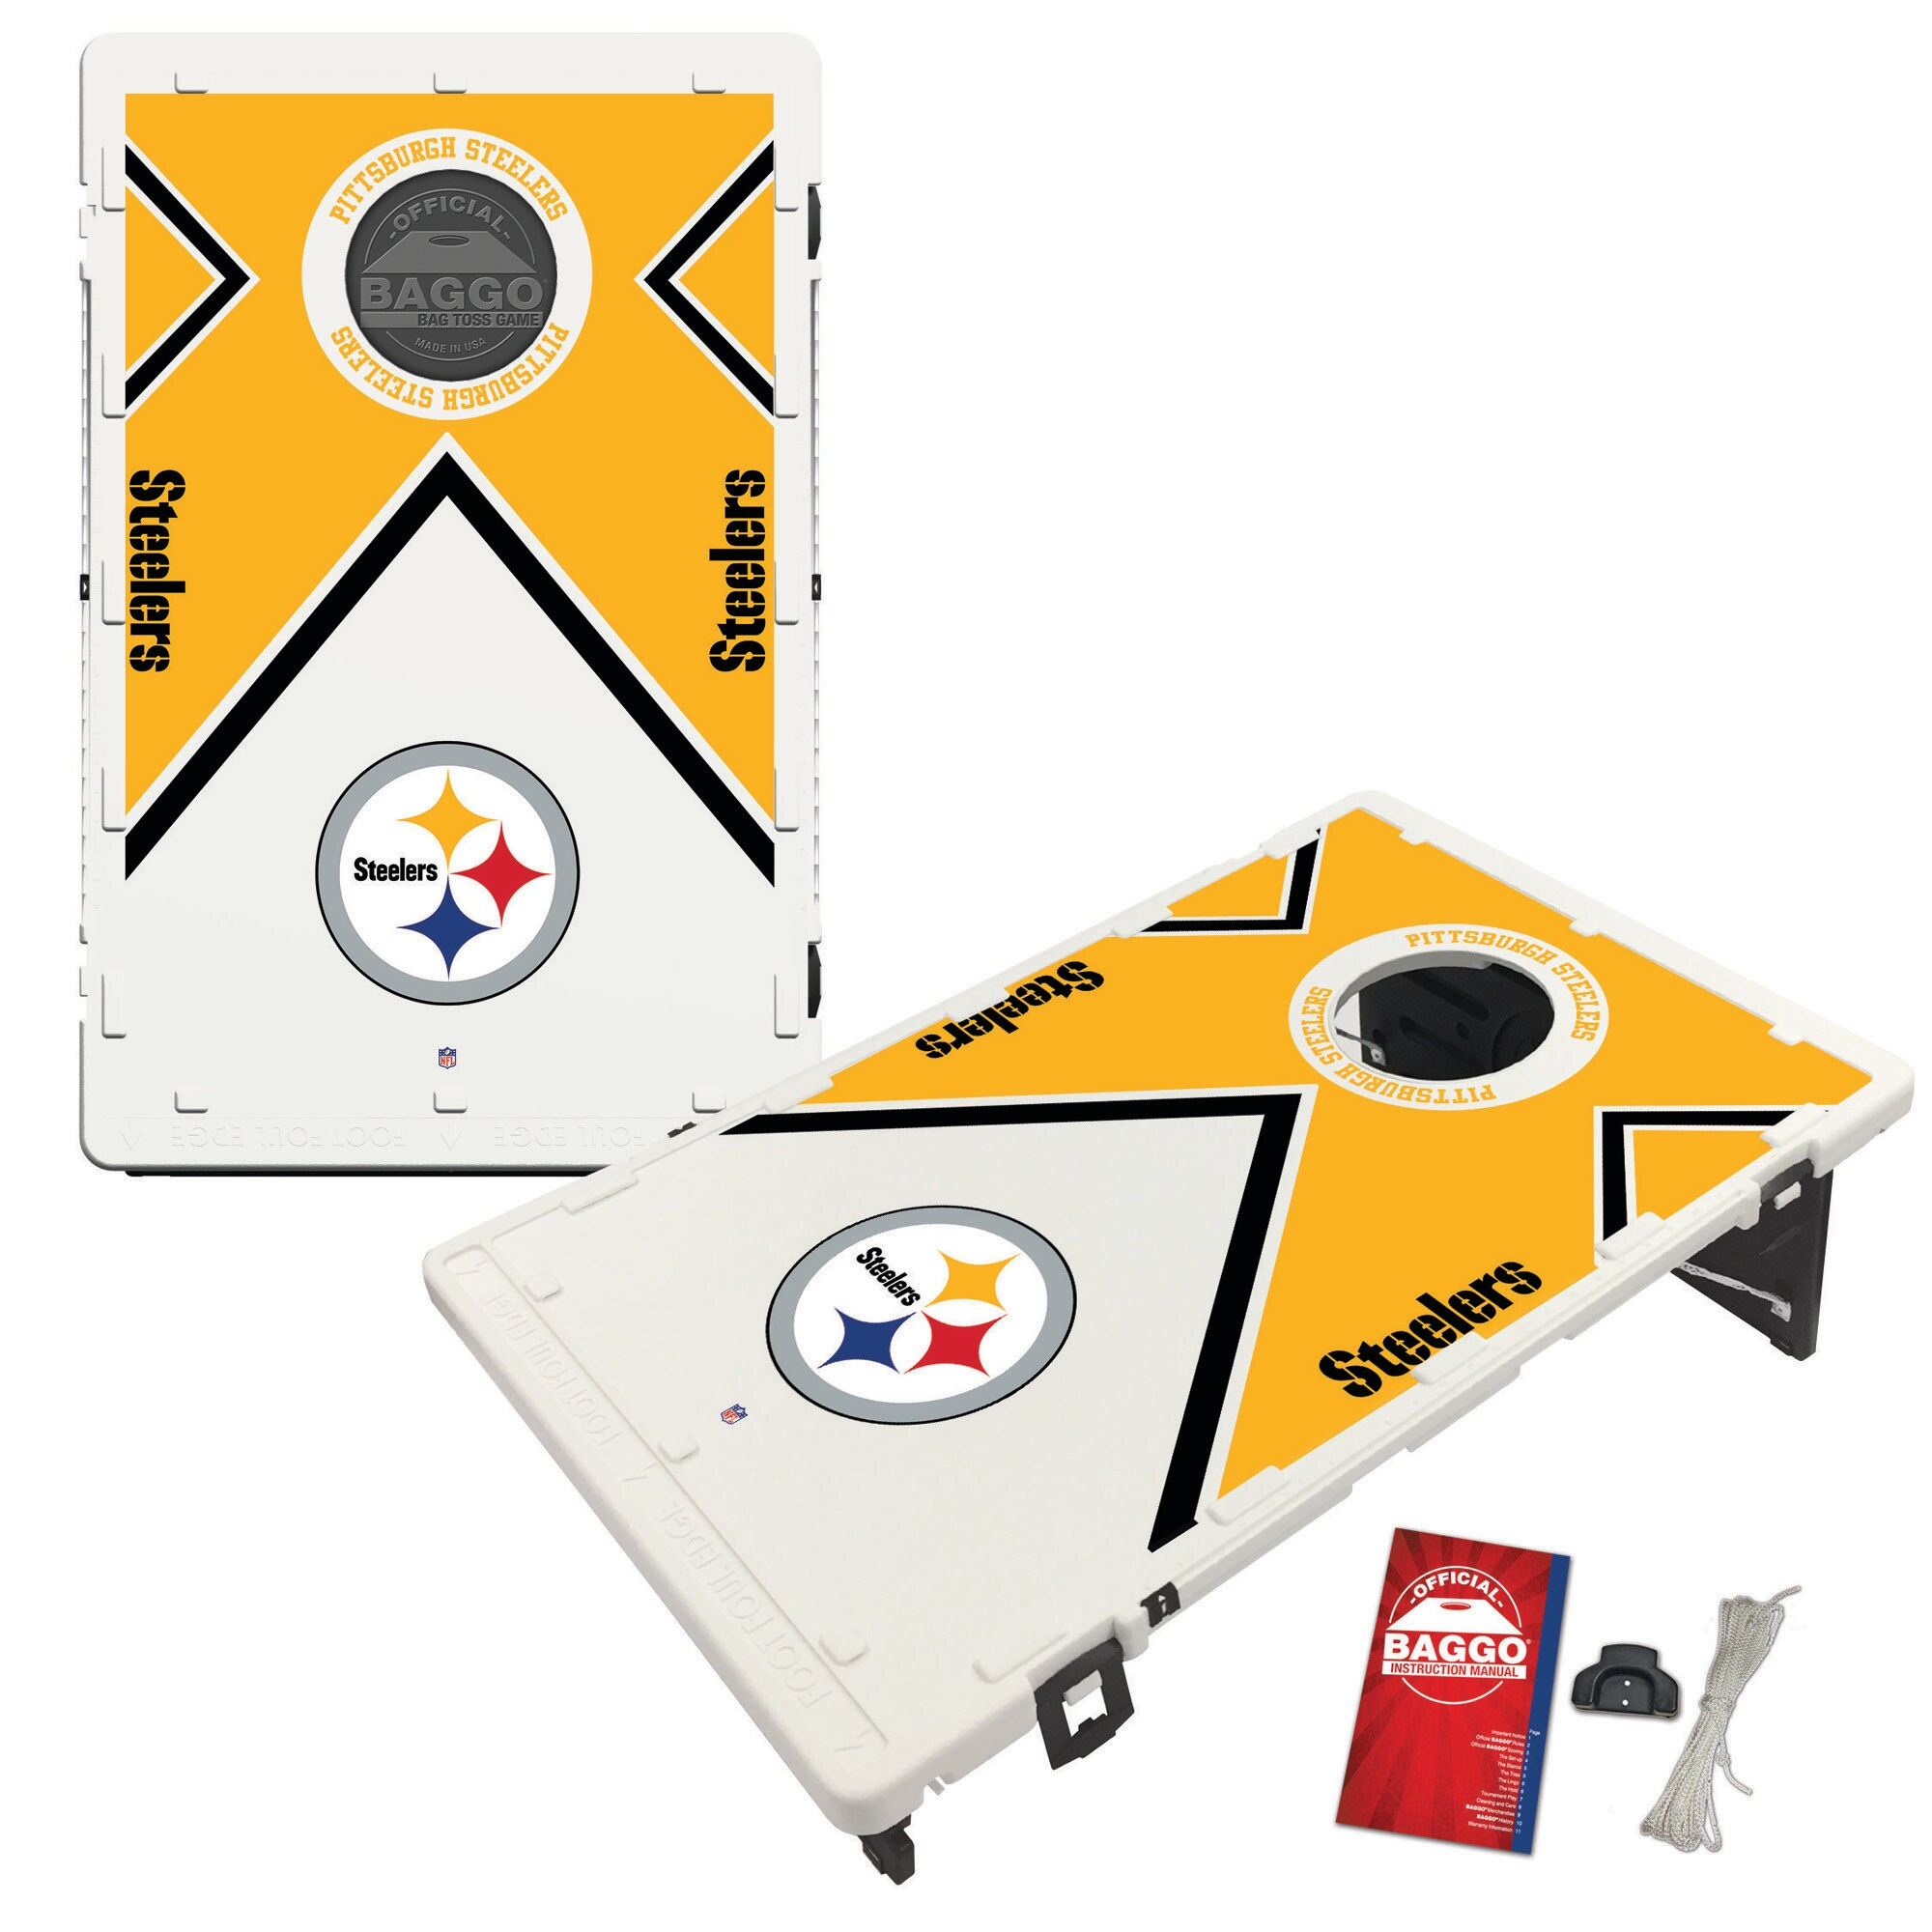 Pittsburgh Steelers 2' x 3' BAGGO Vintage Cornhole Board Tailgate Toss Set